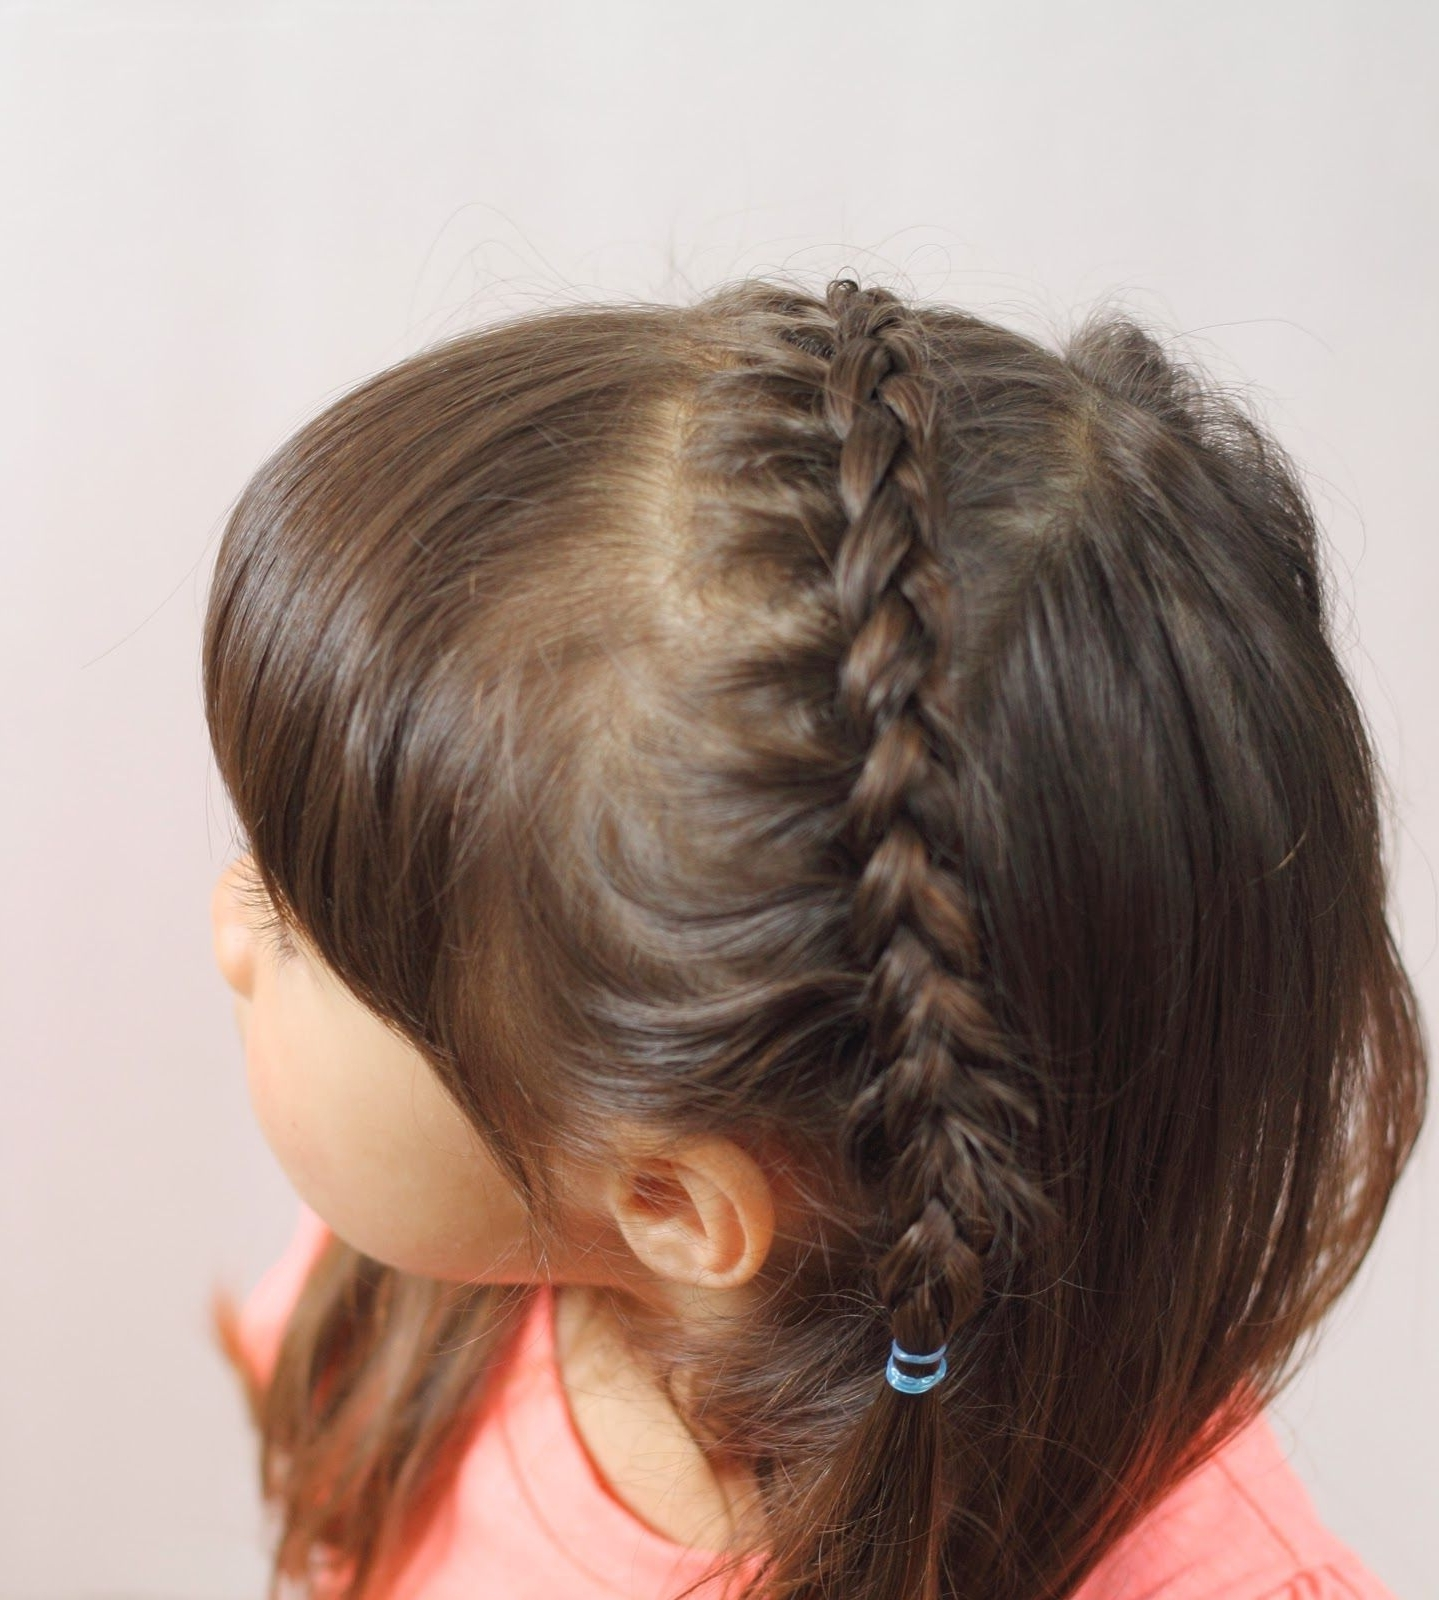 16 Toddler Hair Styles To Mix Up The Pony Tail And Simple Braids Regarding 2017 Dutch Inspired Pony Hairstyles (Gallery 9 of 20)